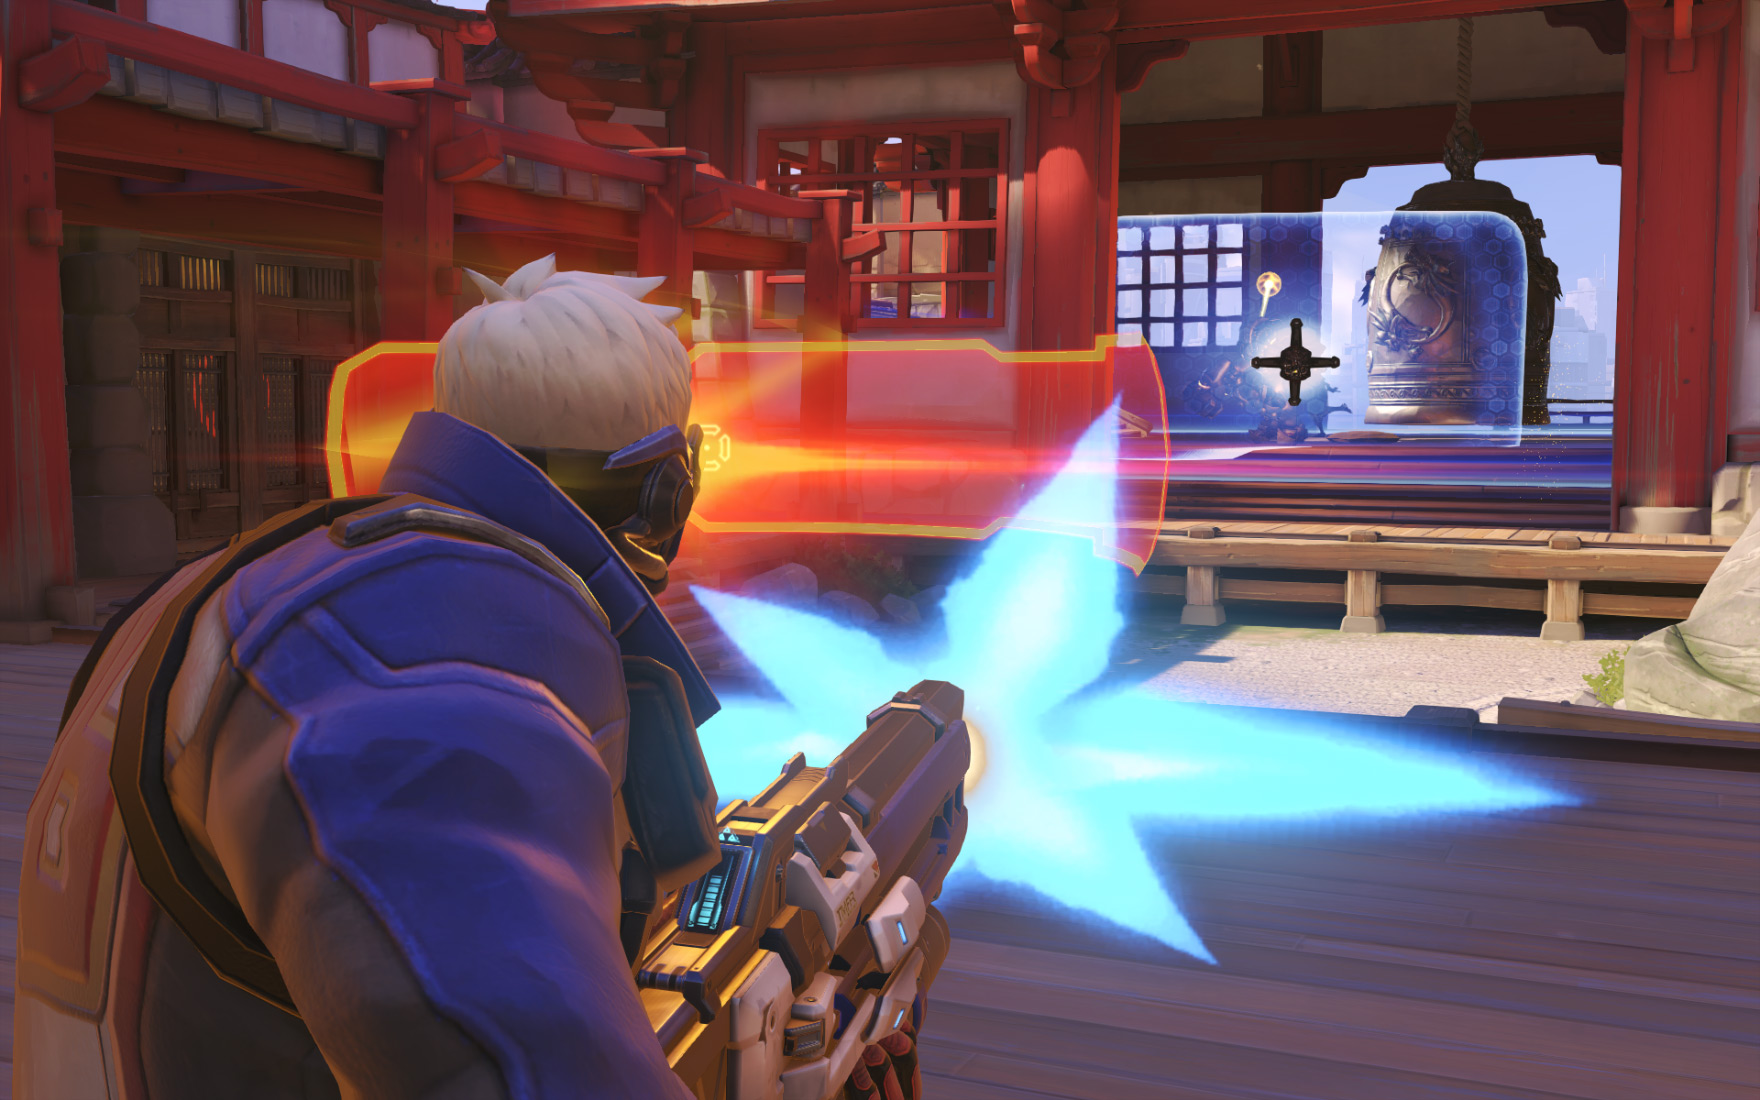 This week's Overwatch competitive Hero Pools remove 4 damage heroes